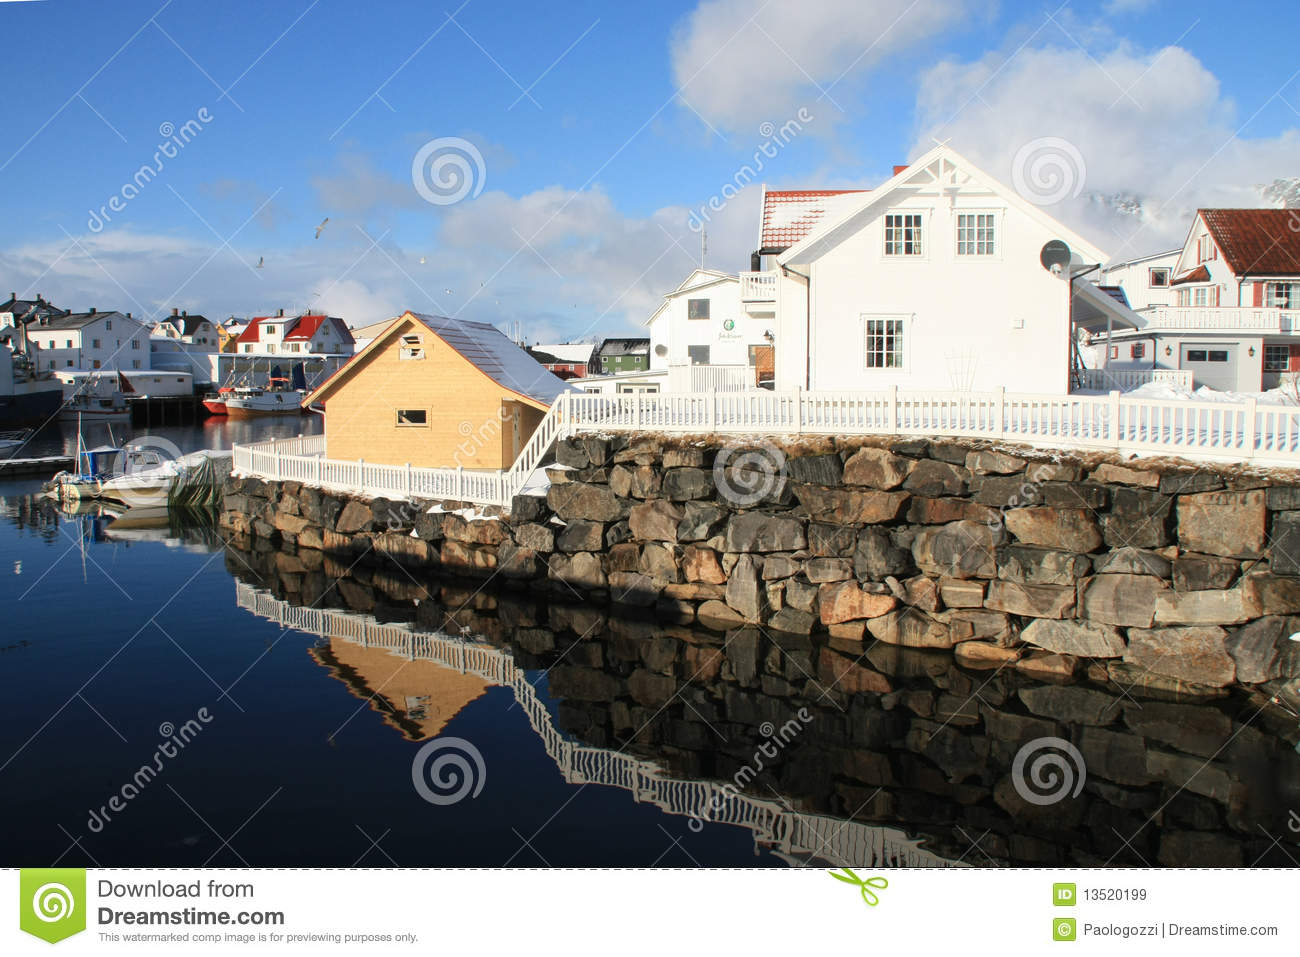 Mirroring in henningsvaer